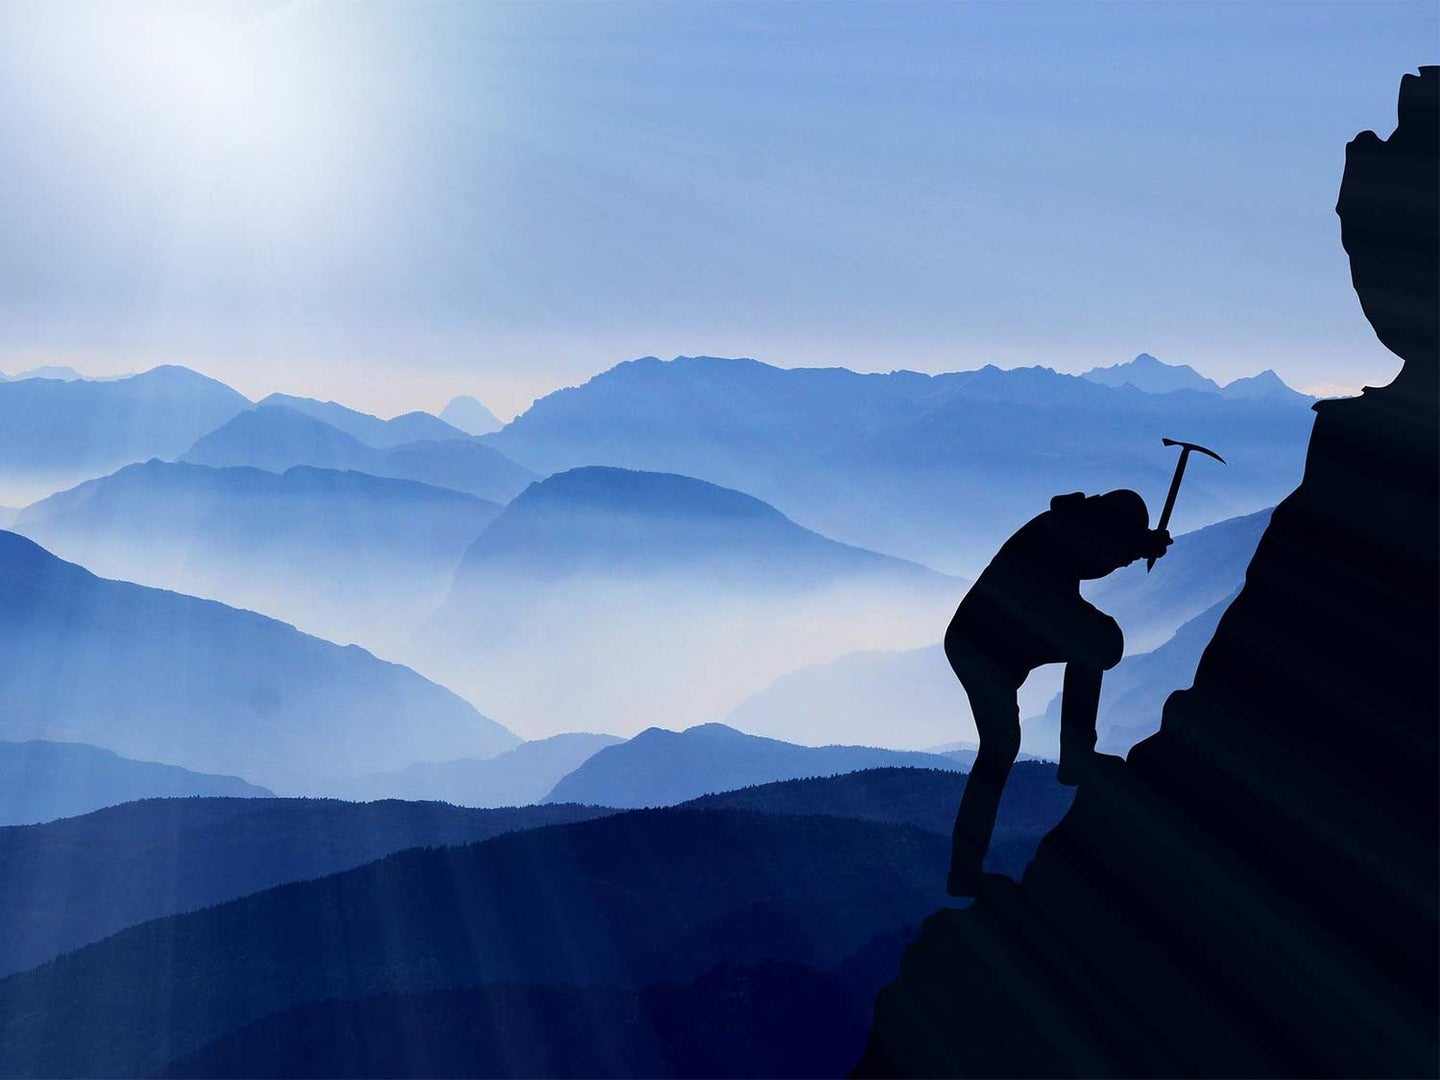 A person climbs a mountainside using an ice pick.